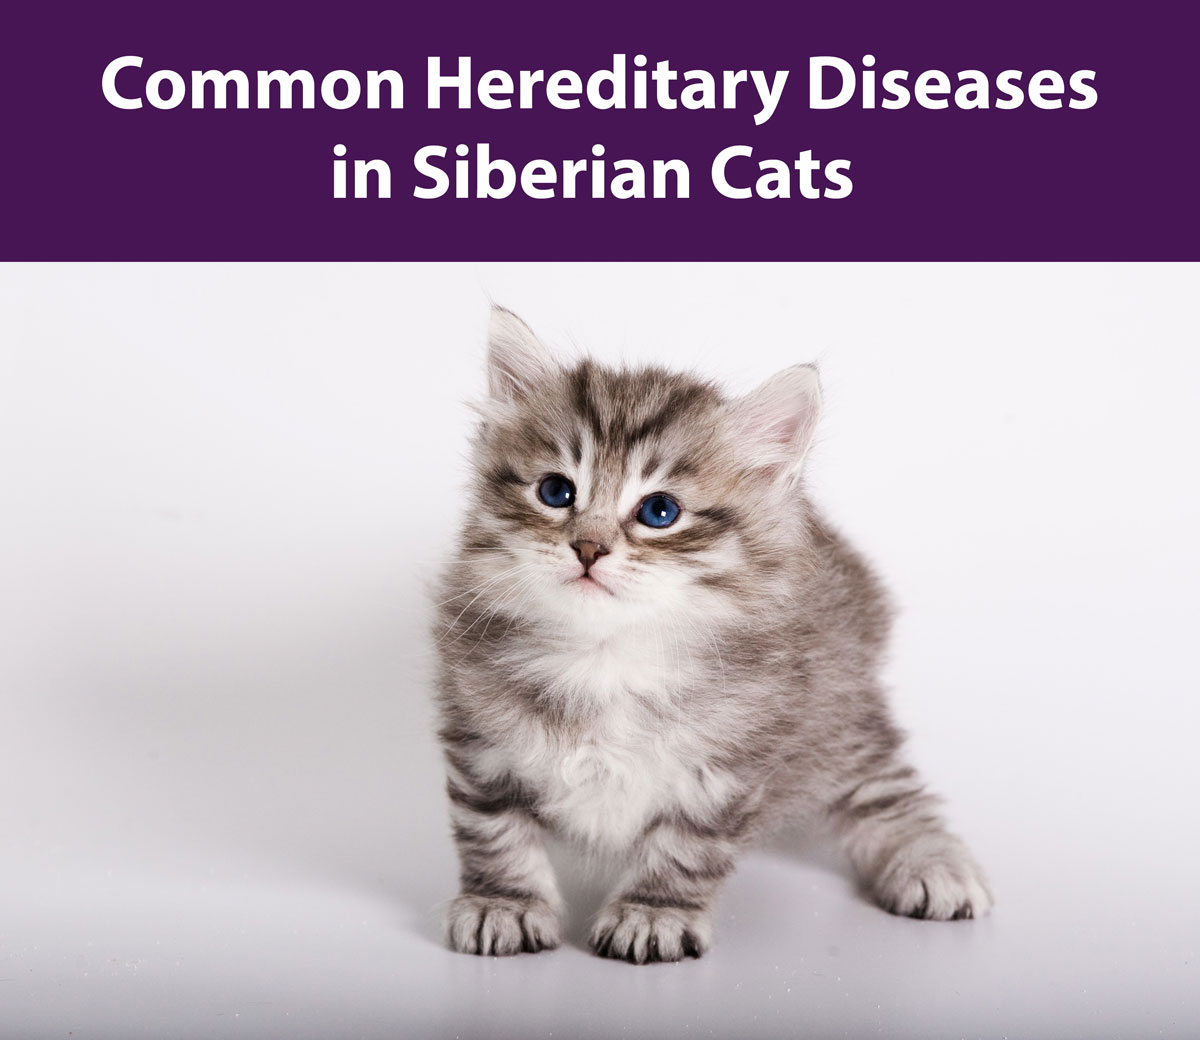 Common Hereditary Diseases in Siberian